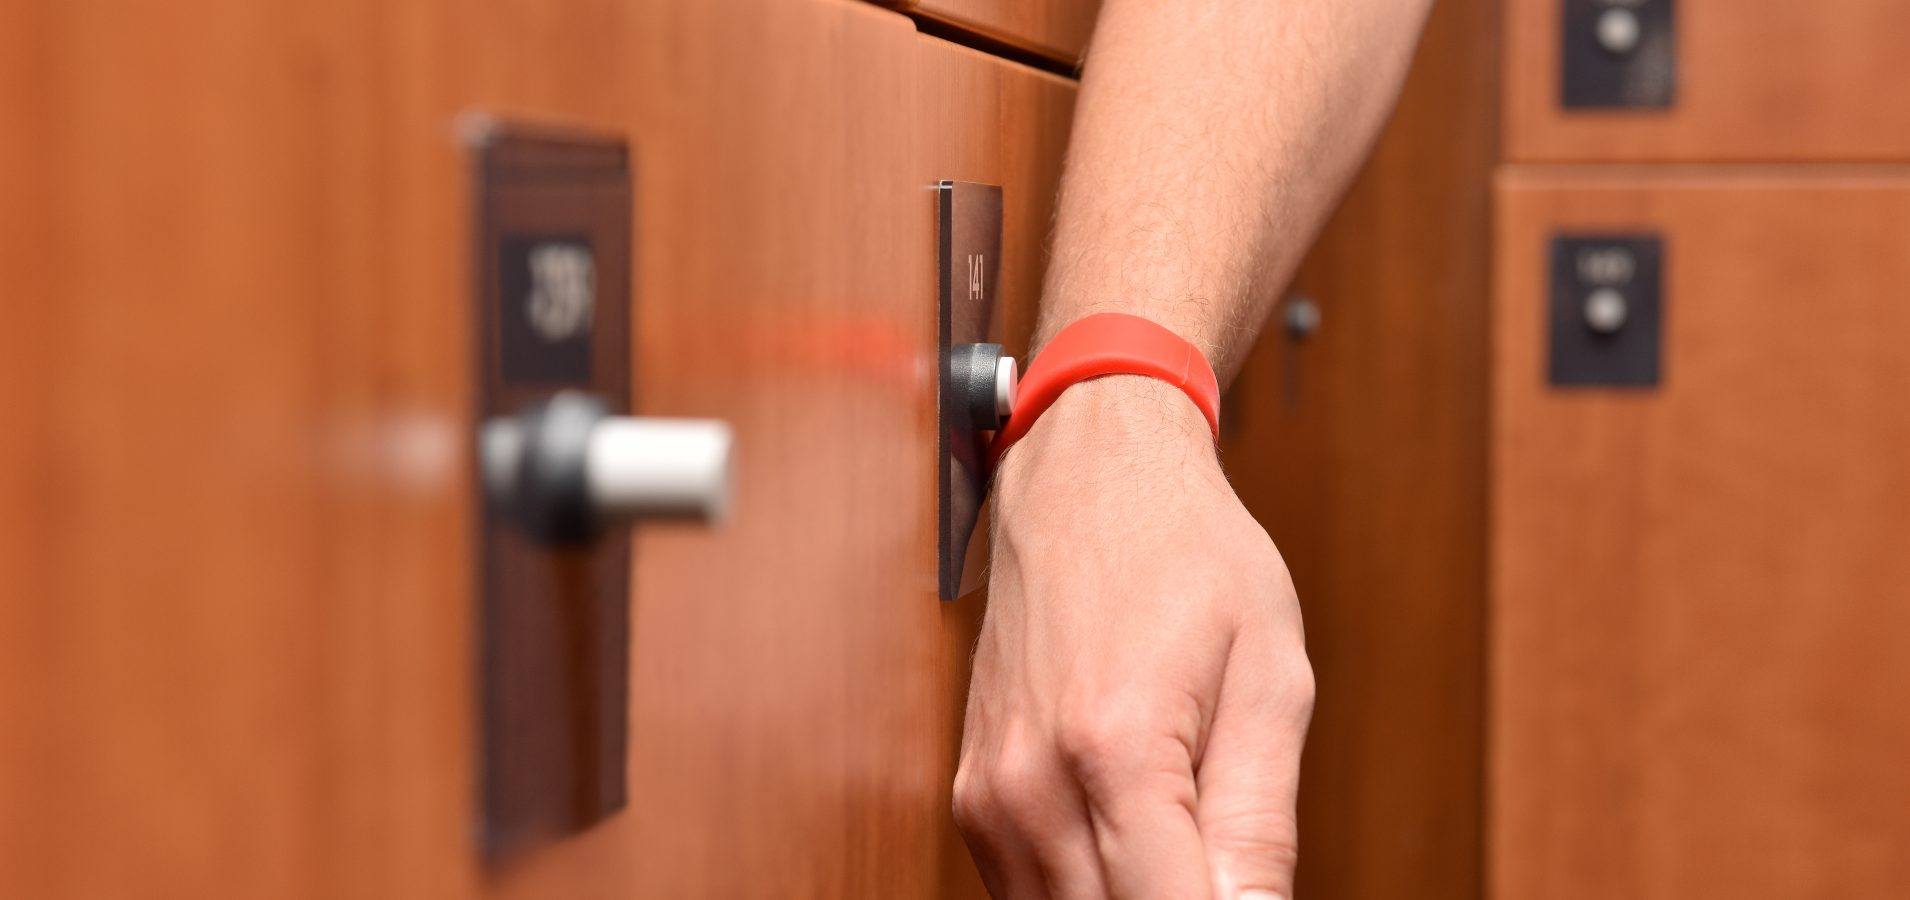 Lockers can be quickly opened with the swipe of a wristband